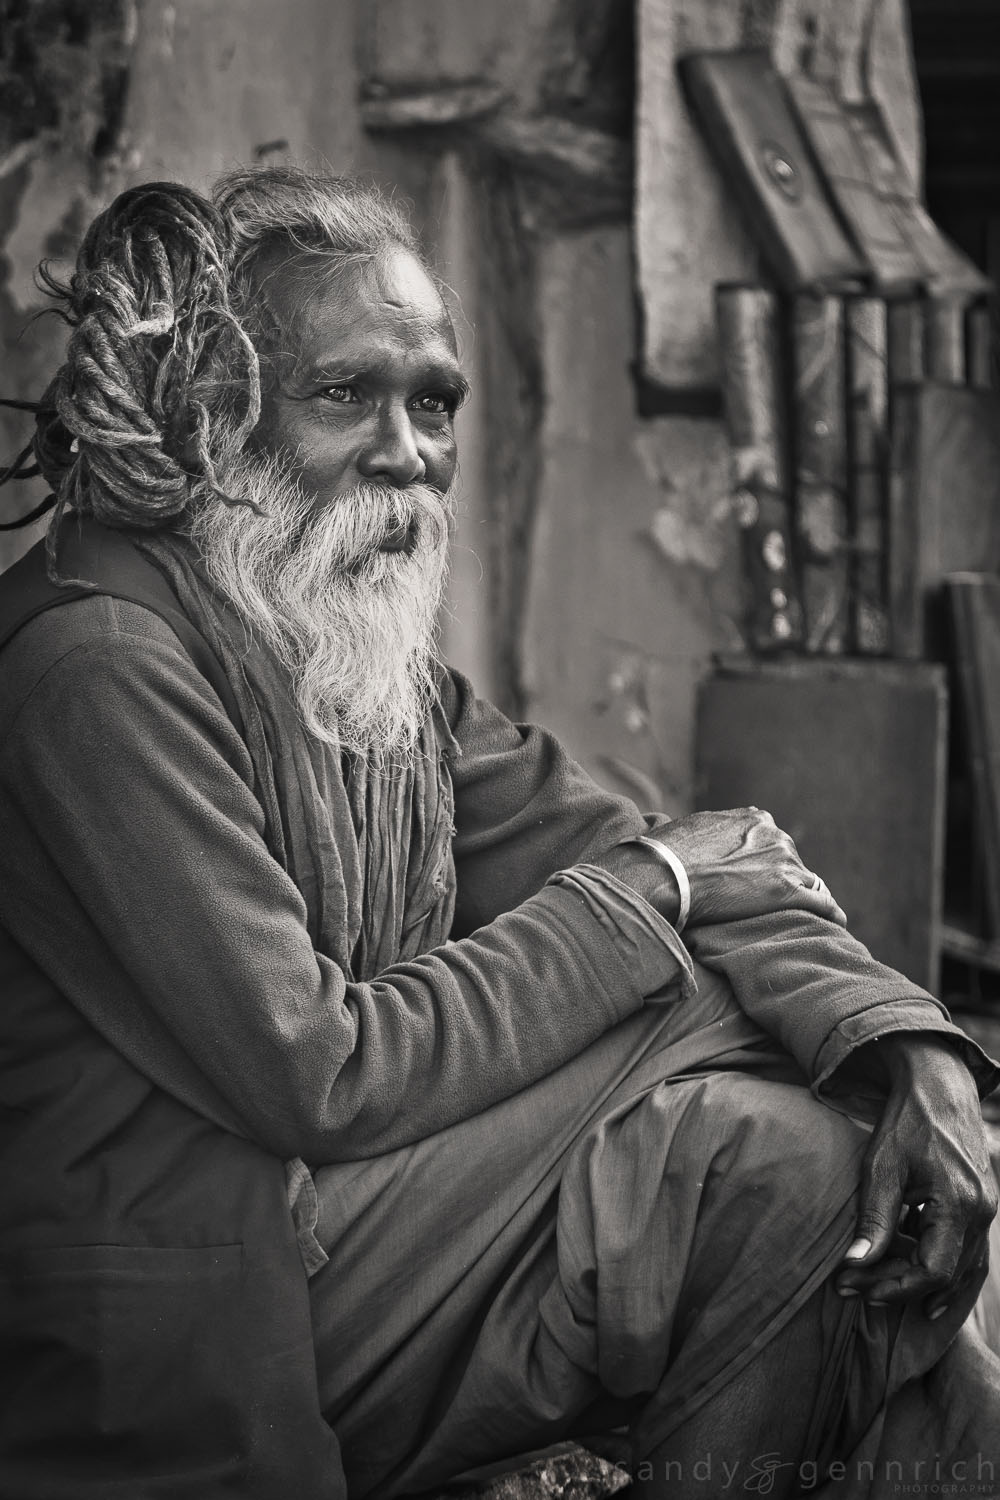 The Bookseller - Udaipur - Rajastan - India